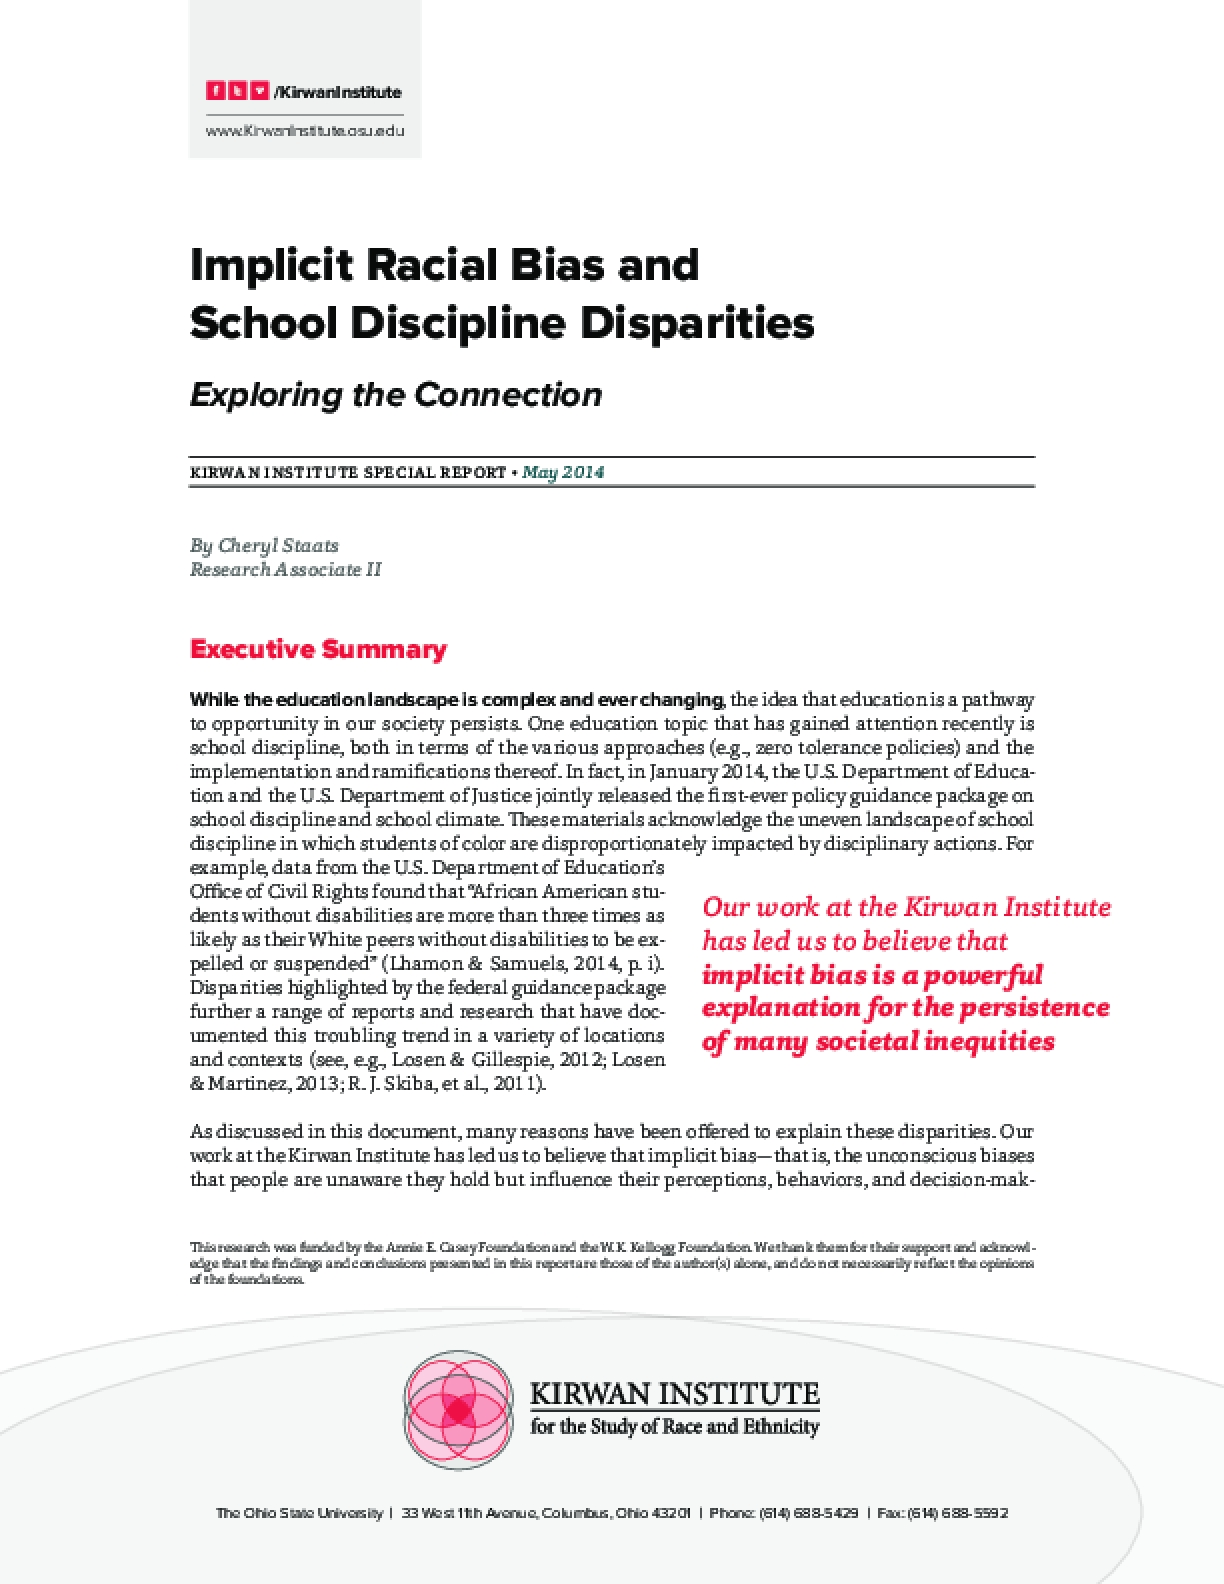 Implicit Racial Bias and School Discipline Disparities: Exploring the Connection